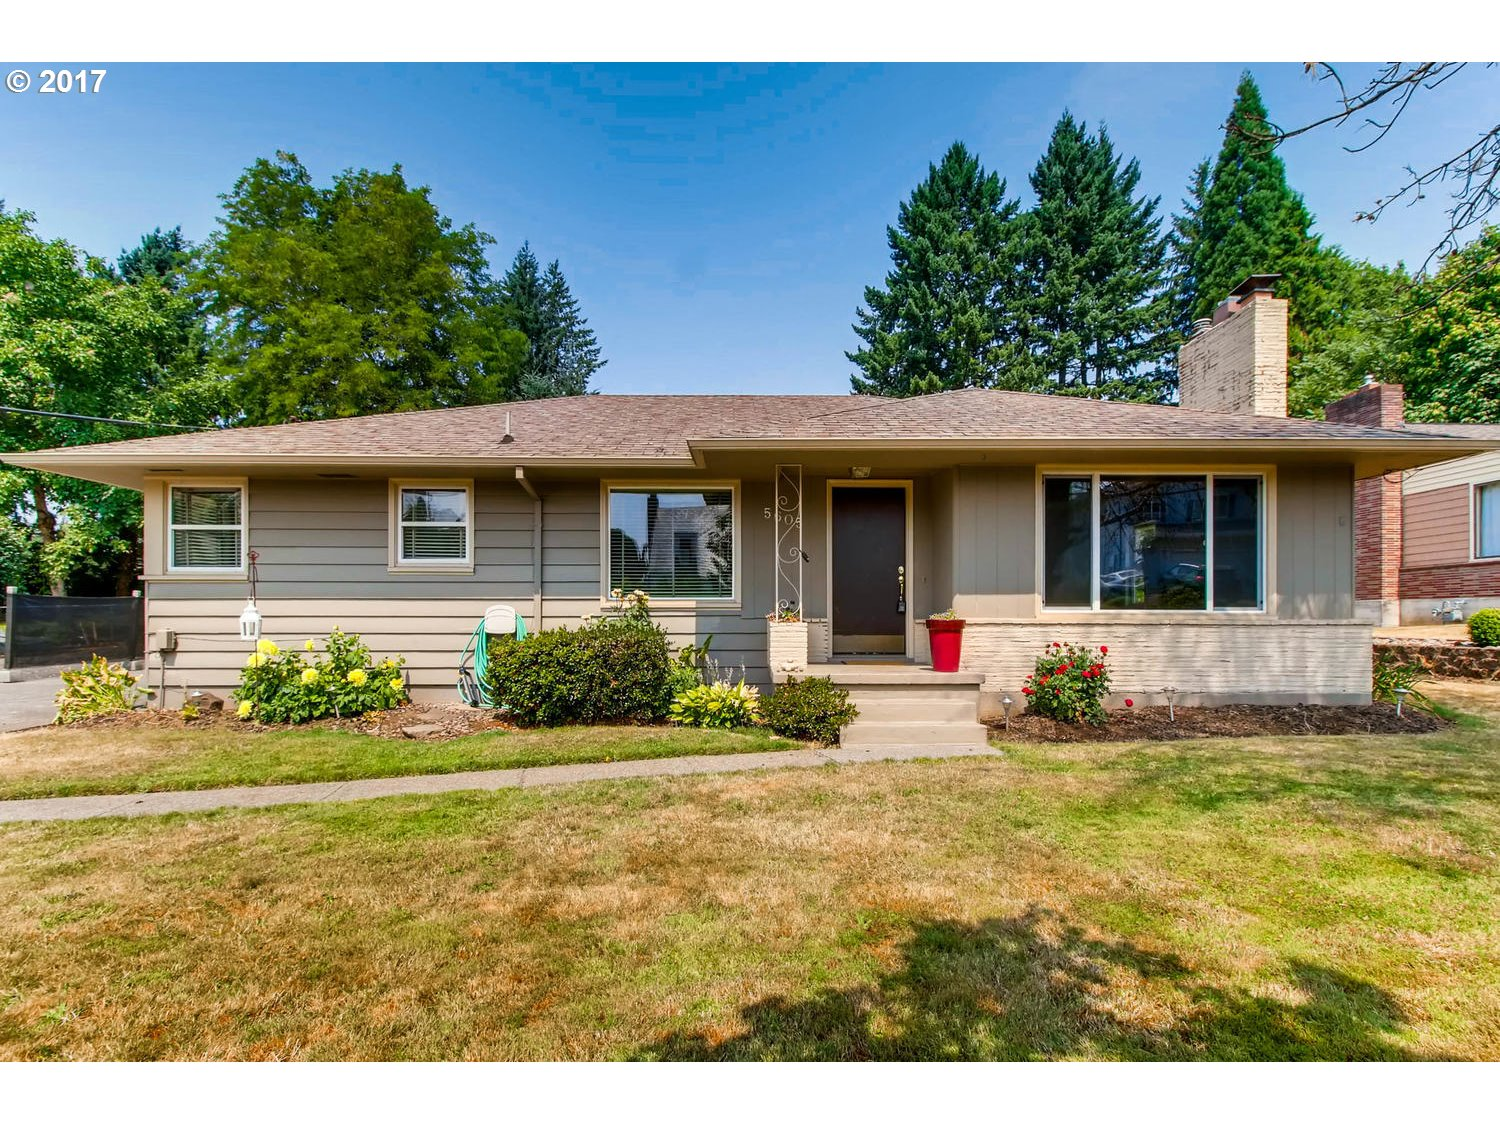 Mid century Milwaukie gem, full of character and charm. Original hardwood floors, beautiful wood burning fireplace with craftsman mantle in living room, and built ins in the dining room make for an inviting space. Newer vinyl windows. Furnace and a/c , possible ADU potential. (buyer to verify) Level lot with gorgeous flowers. Plenty of room to play, garden, entertain. Lots of parking in driveway, oversized garage.